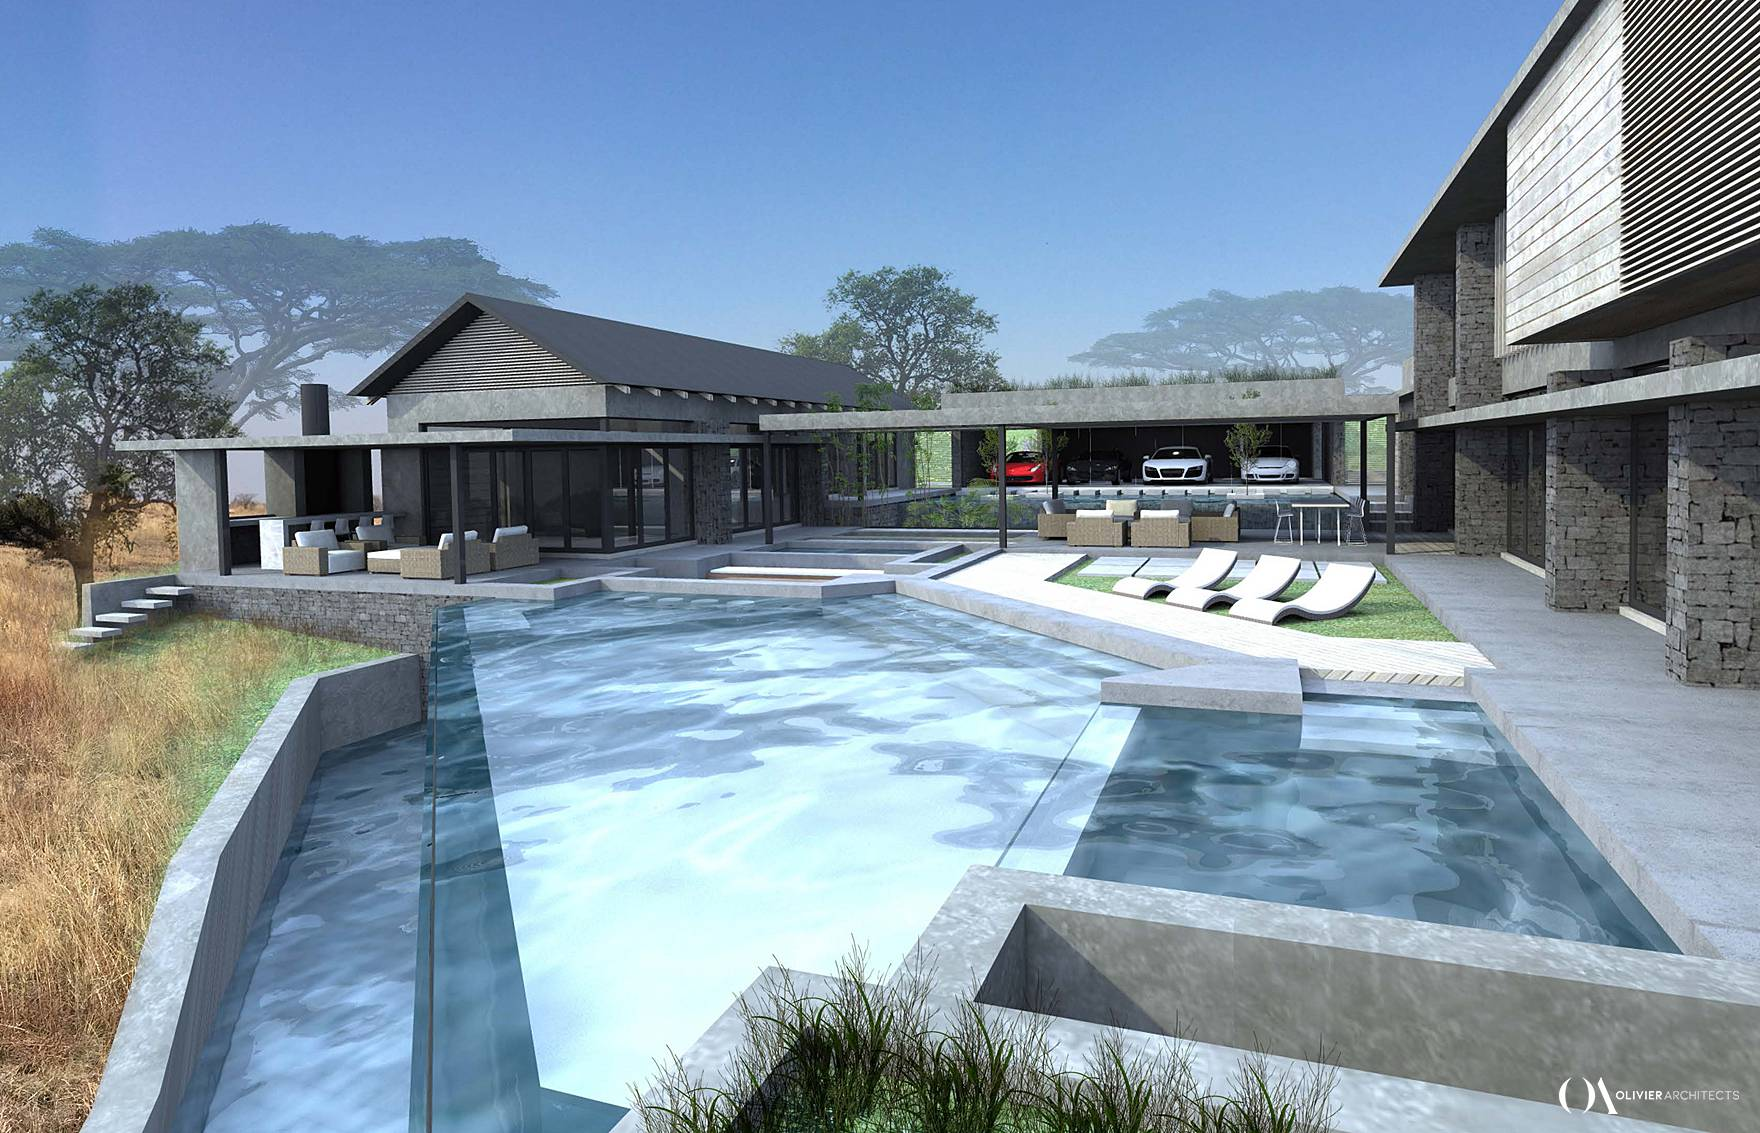 Contemporary Johannesburg Estate Architecture, House Designs, South Africa, Olivier Architects